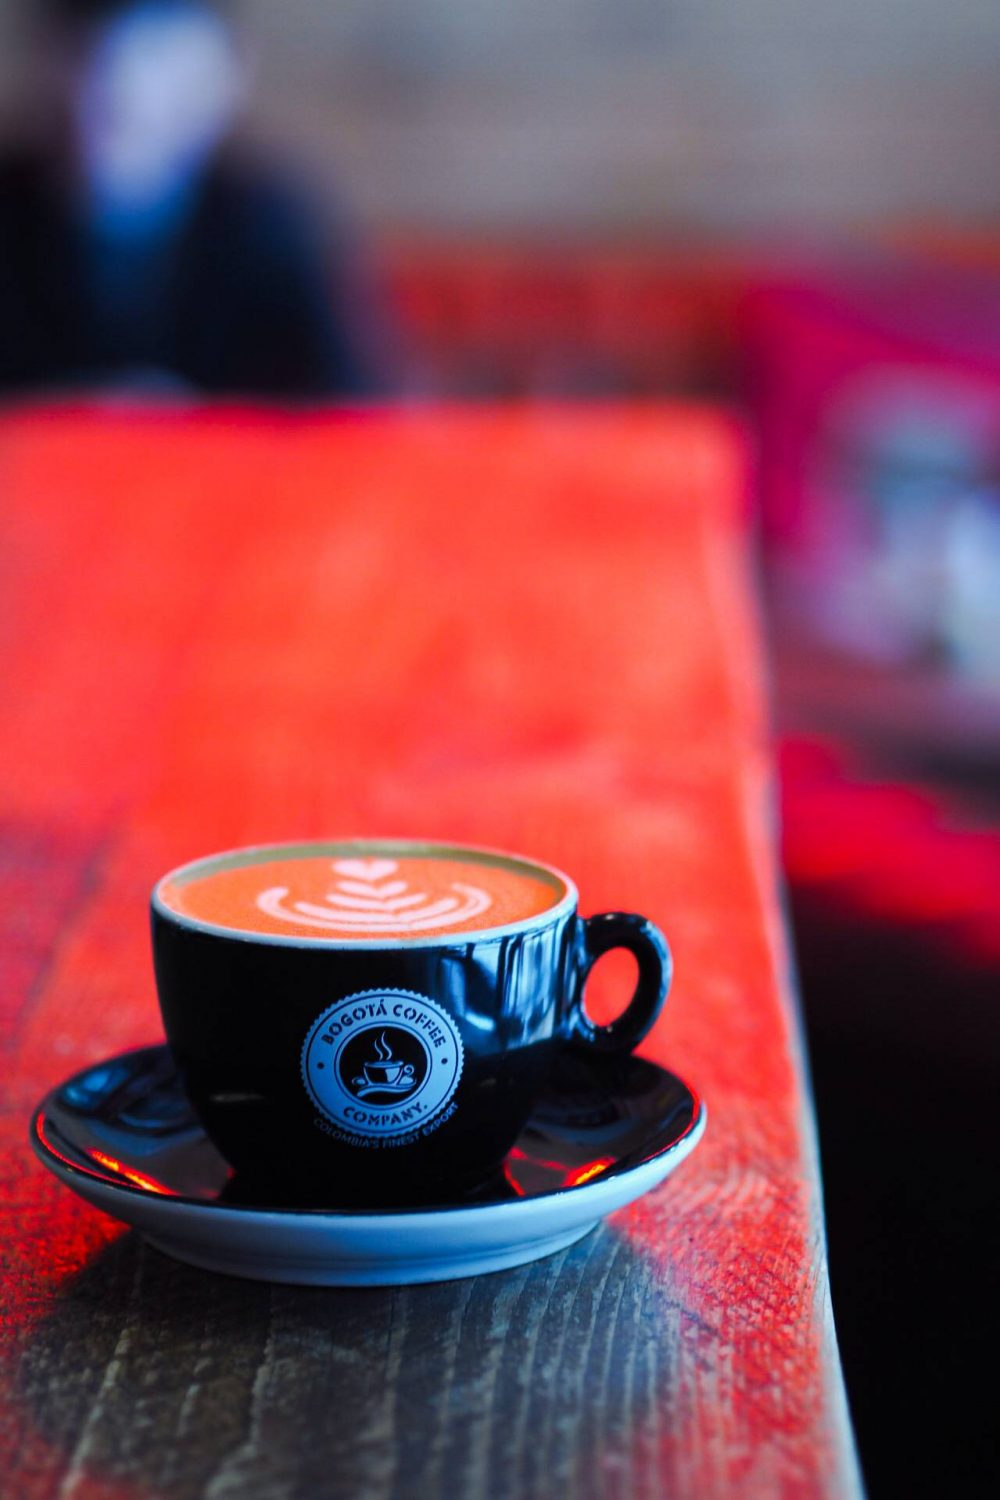 A cup of coffee at Bogota coffee co -  - Eat Out to Help out in Milton Keynes.